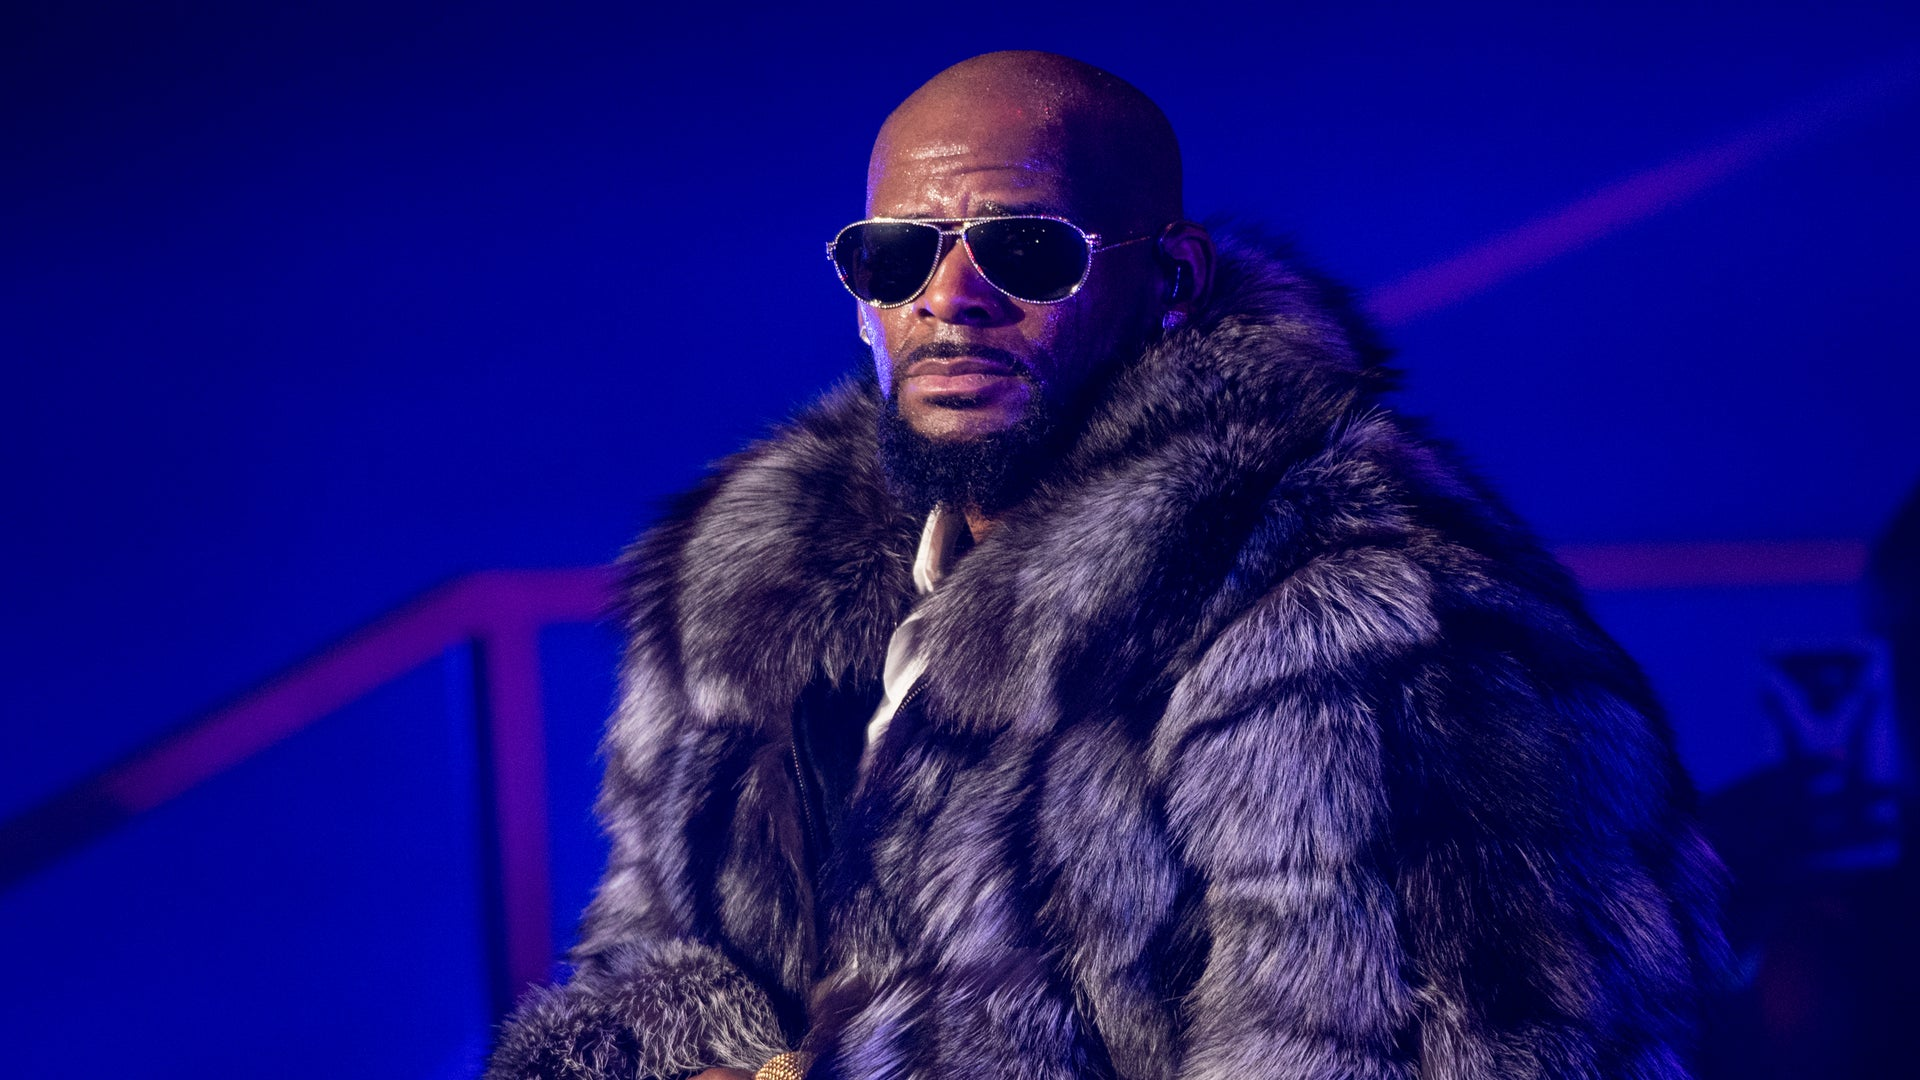 The National Sexual Assault Hotline Received An Increase In Calls During Premiere Of 'Surviving R. Kelly'